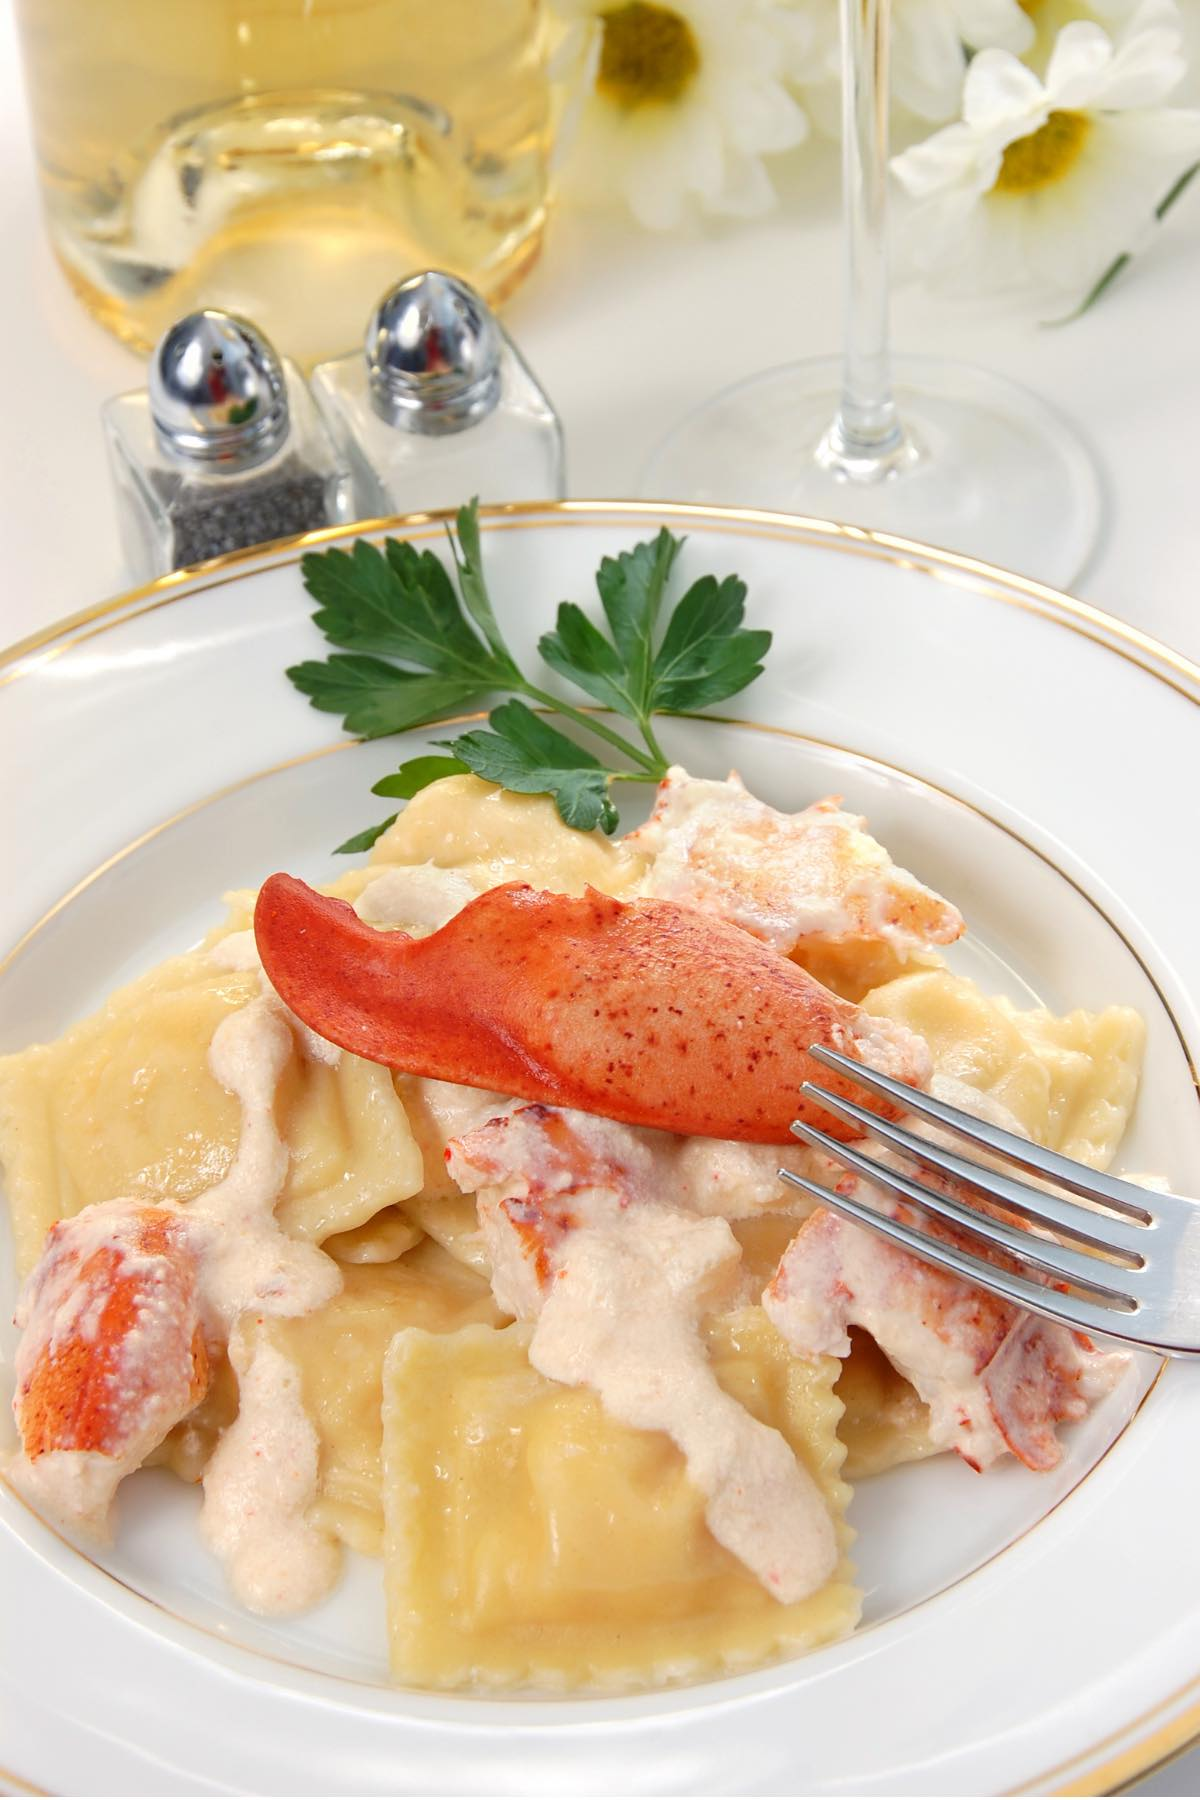 A serving of lobster ravioli with a rose-colored cream sauce and garnished with fresh lobster meat